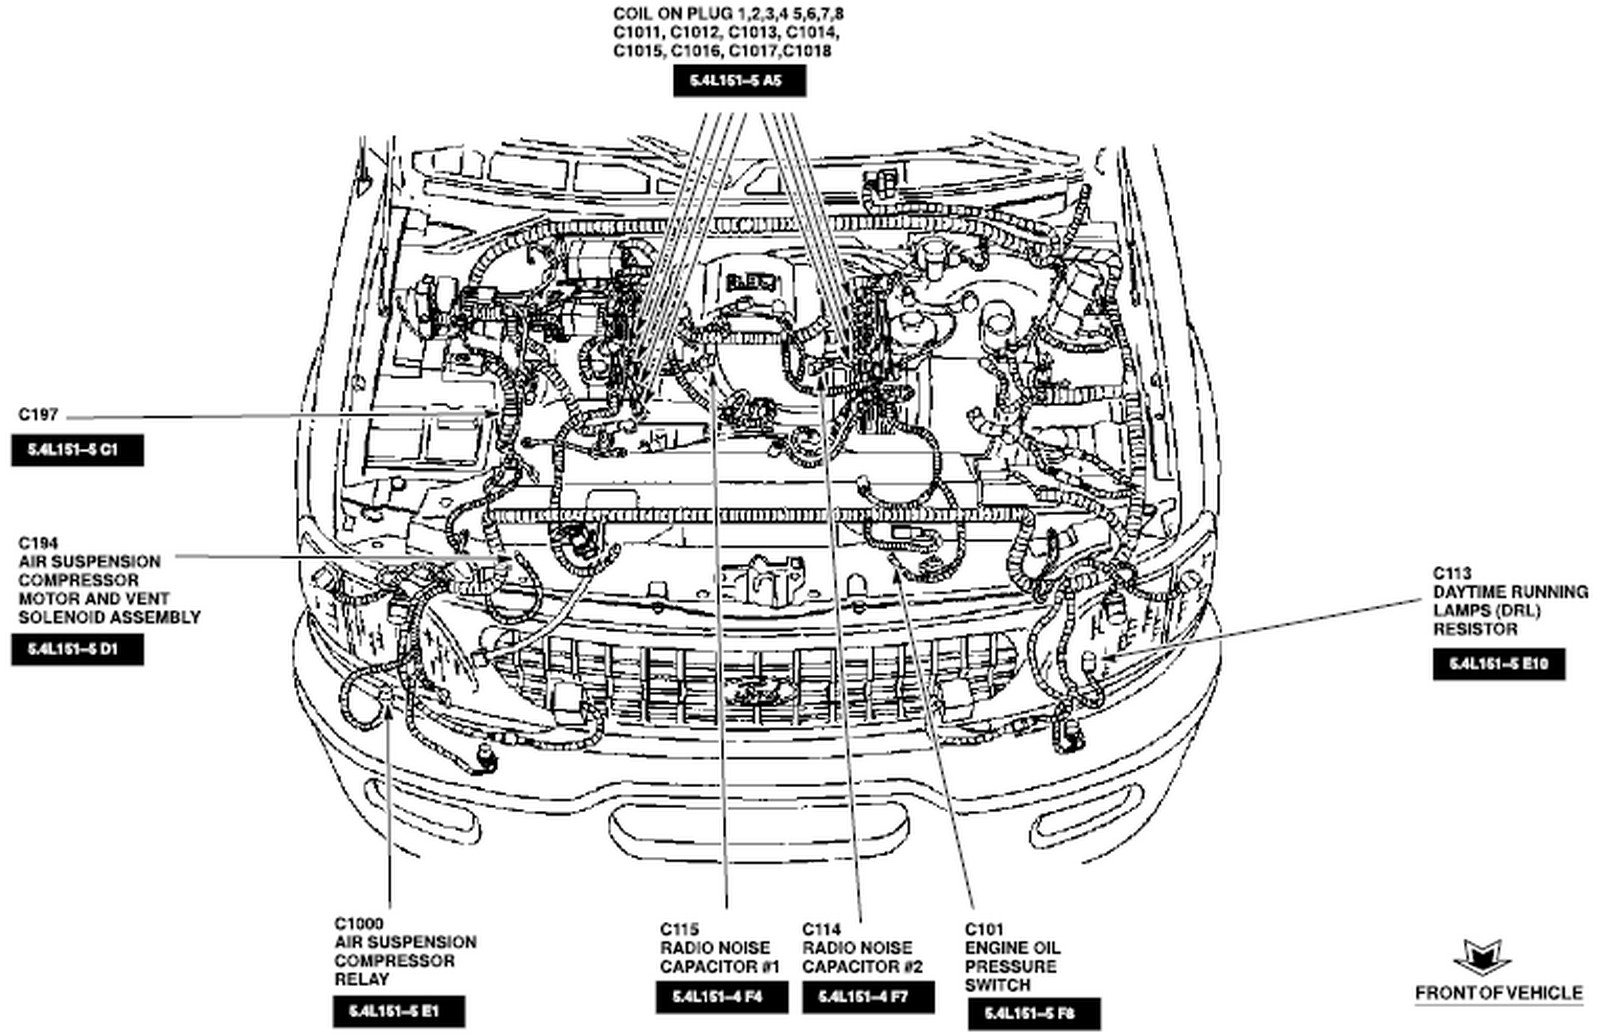 1999 volvo v70 ac wiring diagram with Navigator Strut Diagram on ElectricalCircuitsRelays together with 1998 Volvo S70 Glt Engine Diagram in addition Volvo 960 Egr Valve Location additionally S70 Engine Diagram moreover Navigator Strut Diagram.